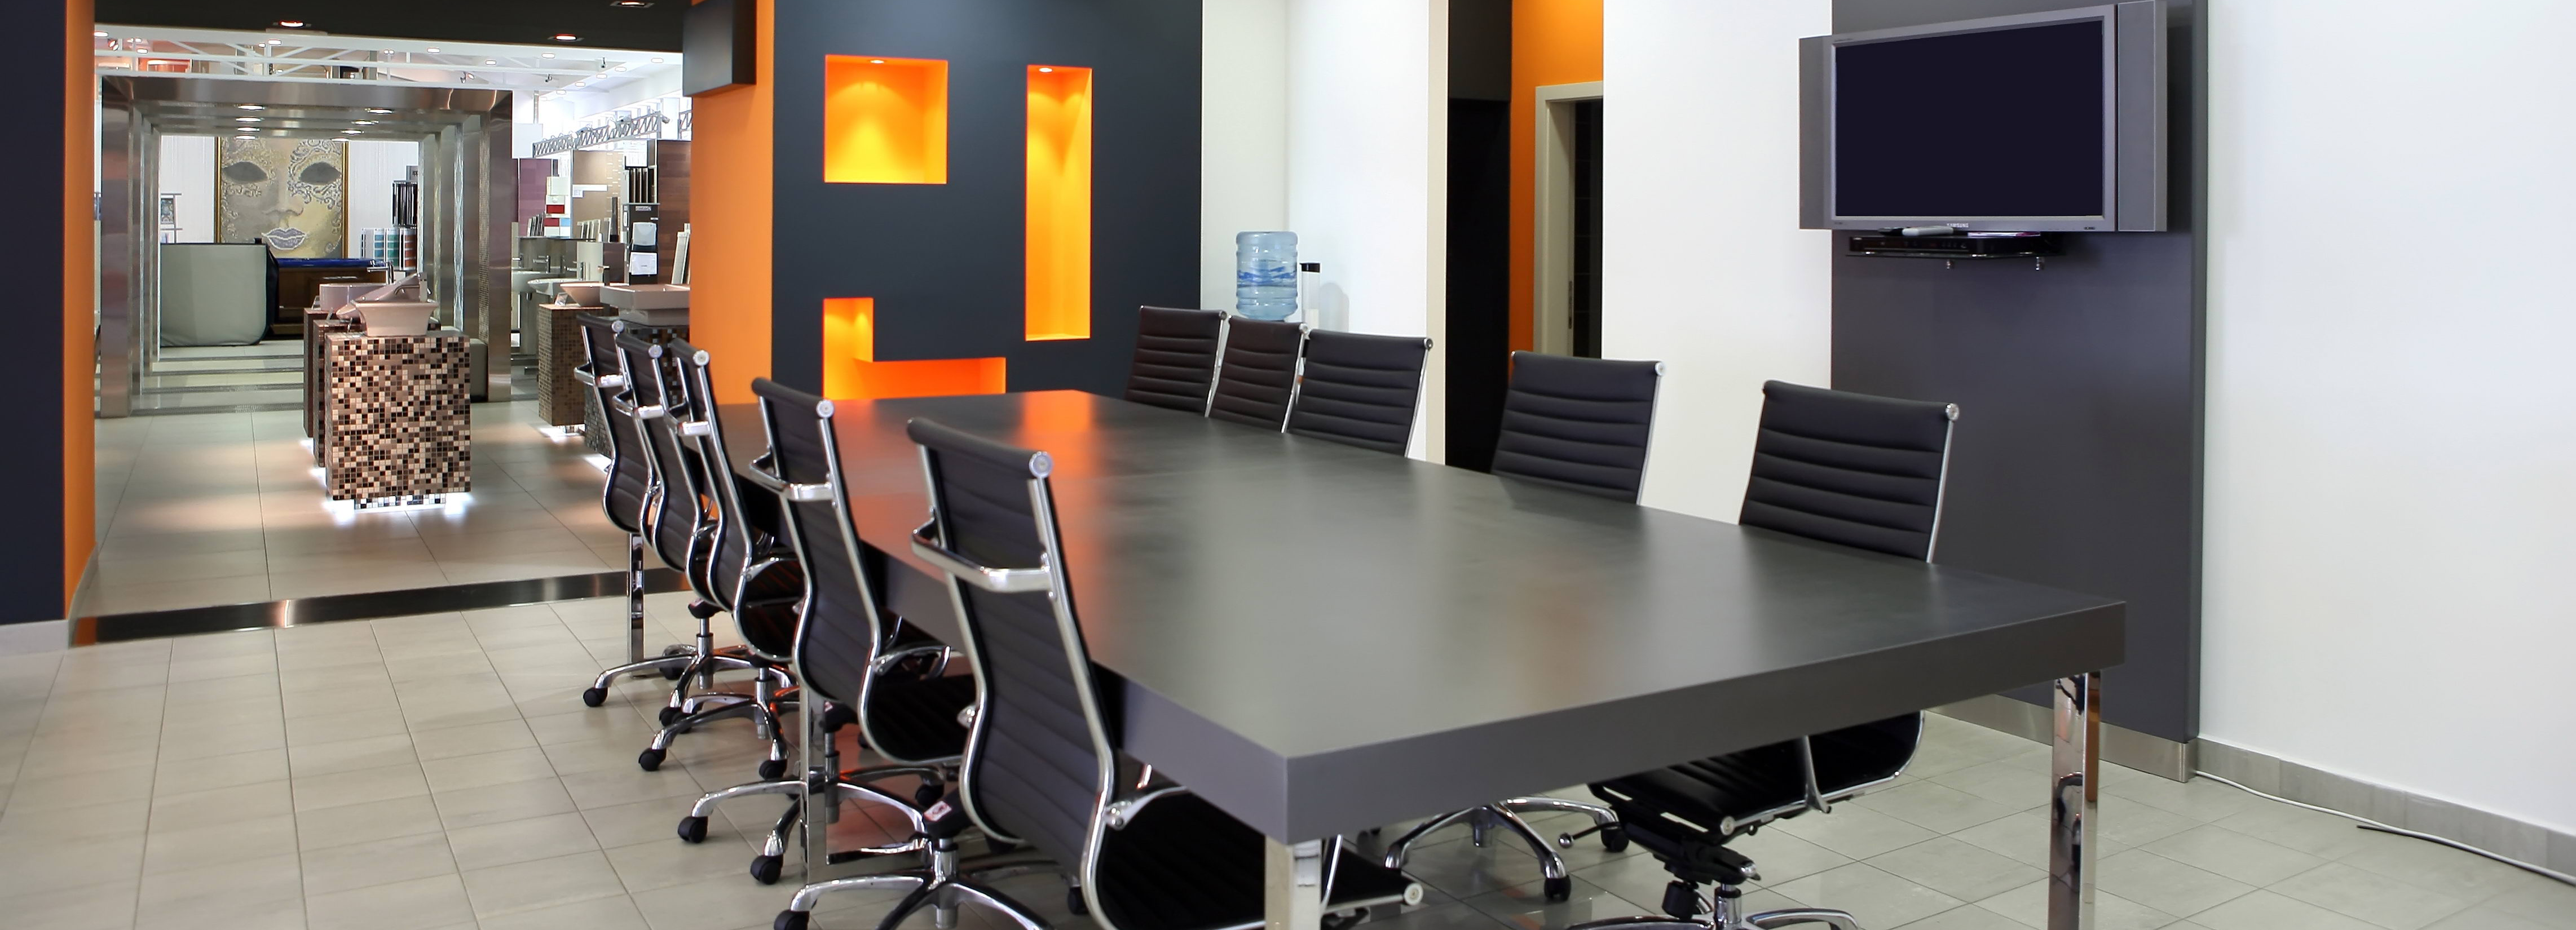 9012meeting-table